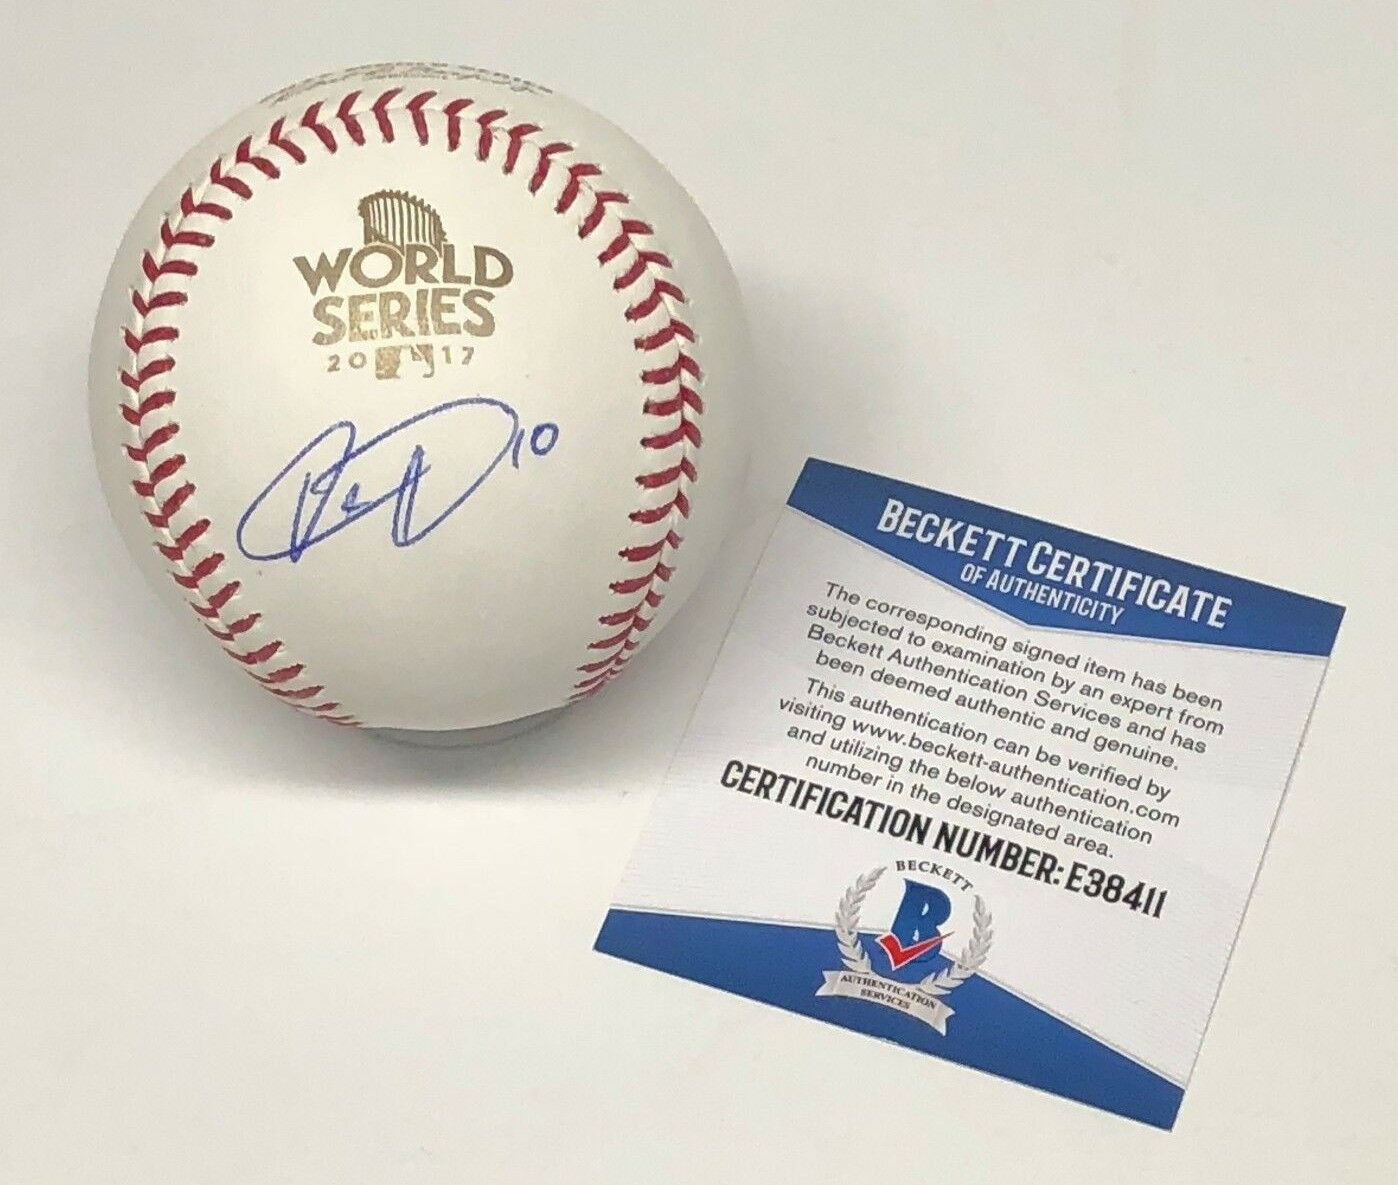 Yulieski Gurriel Signed 2017 World Series Baseball WSMLB BAS Beckett E38411